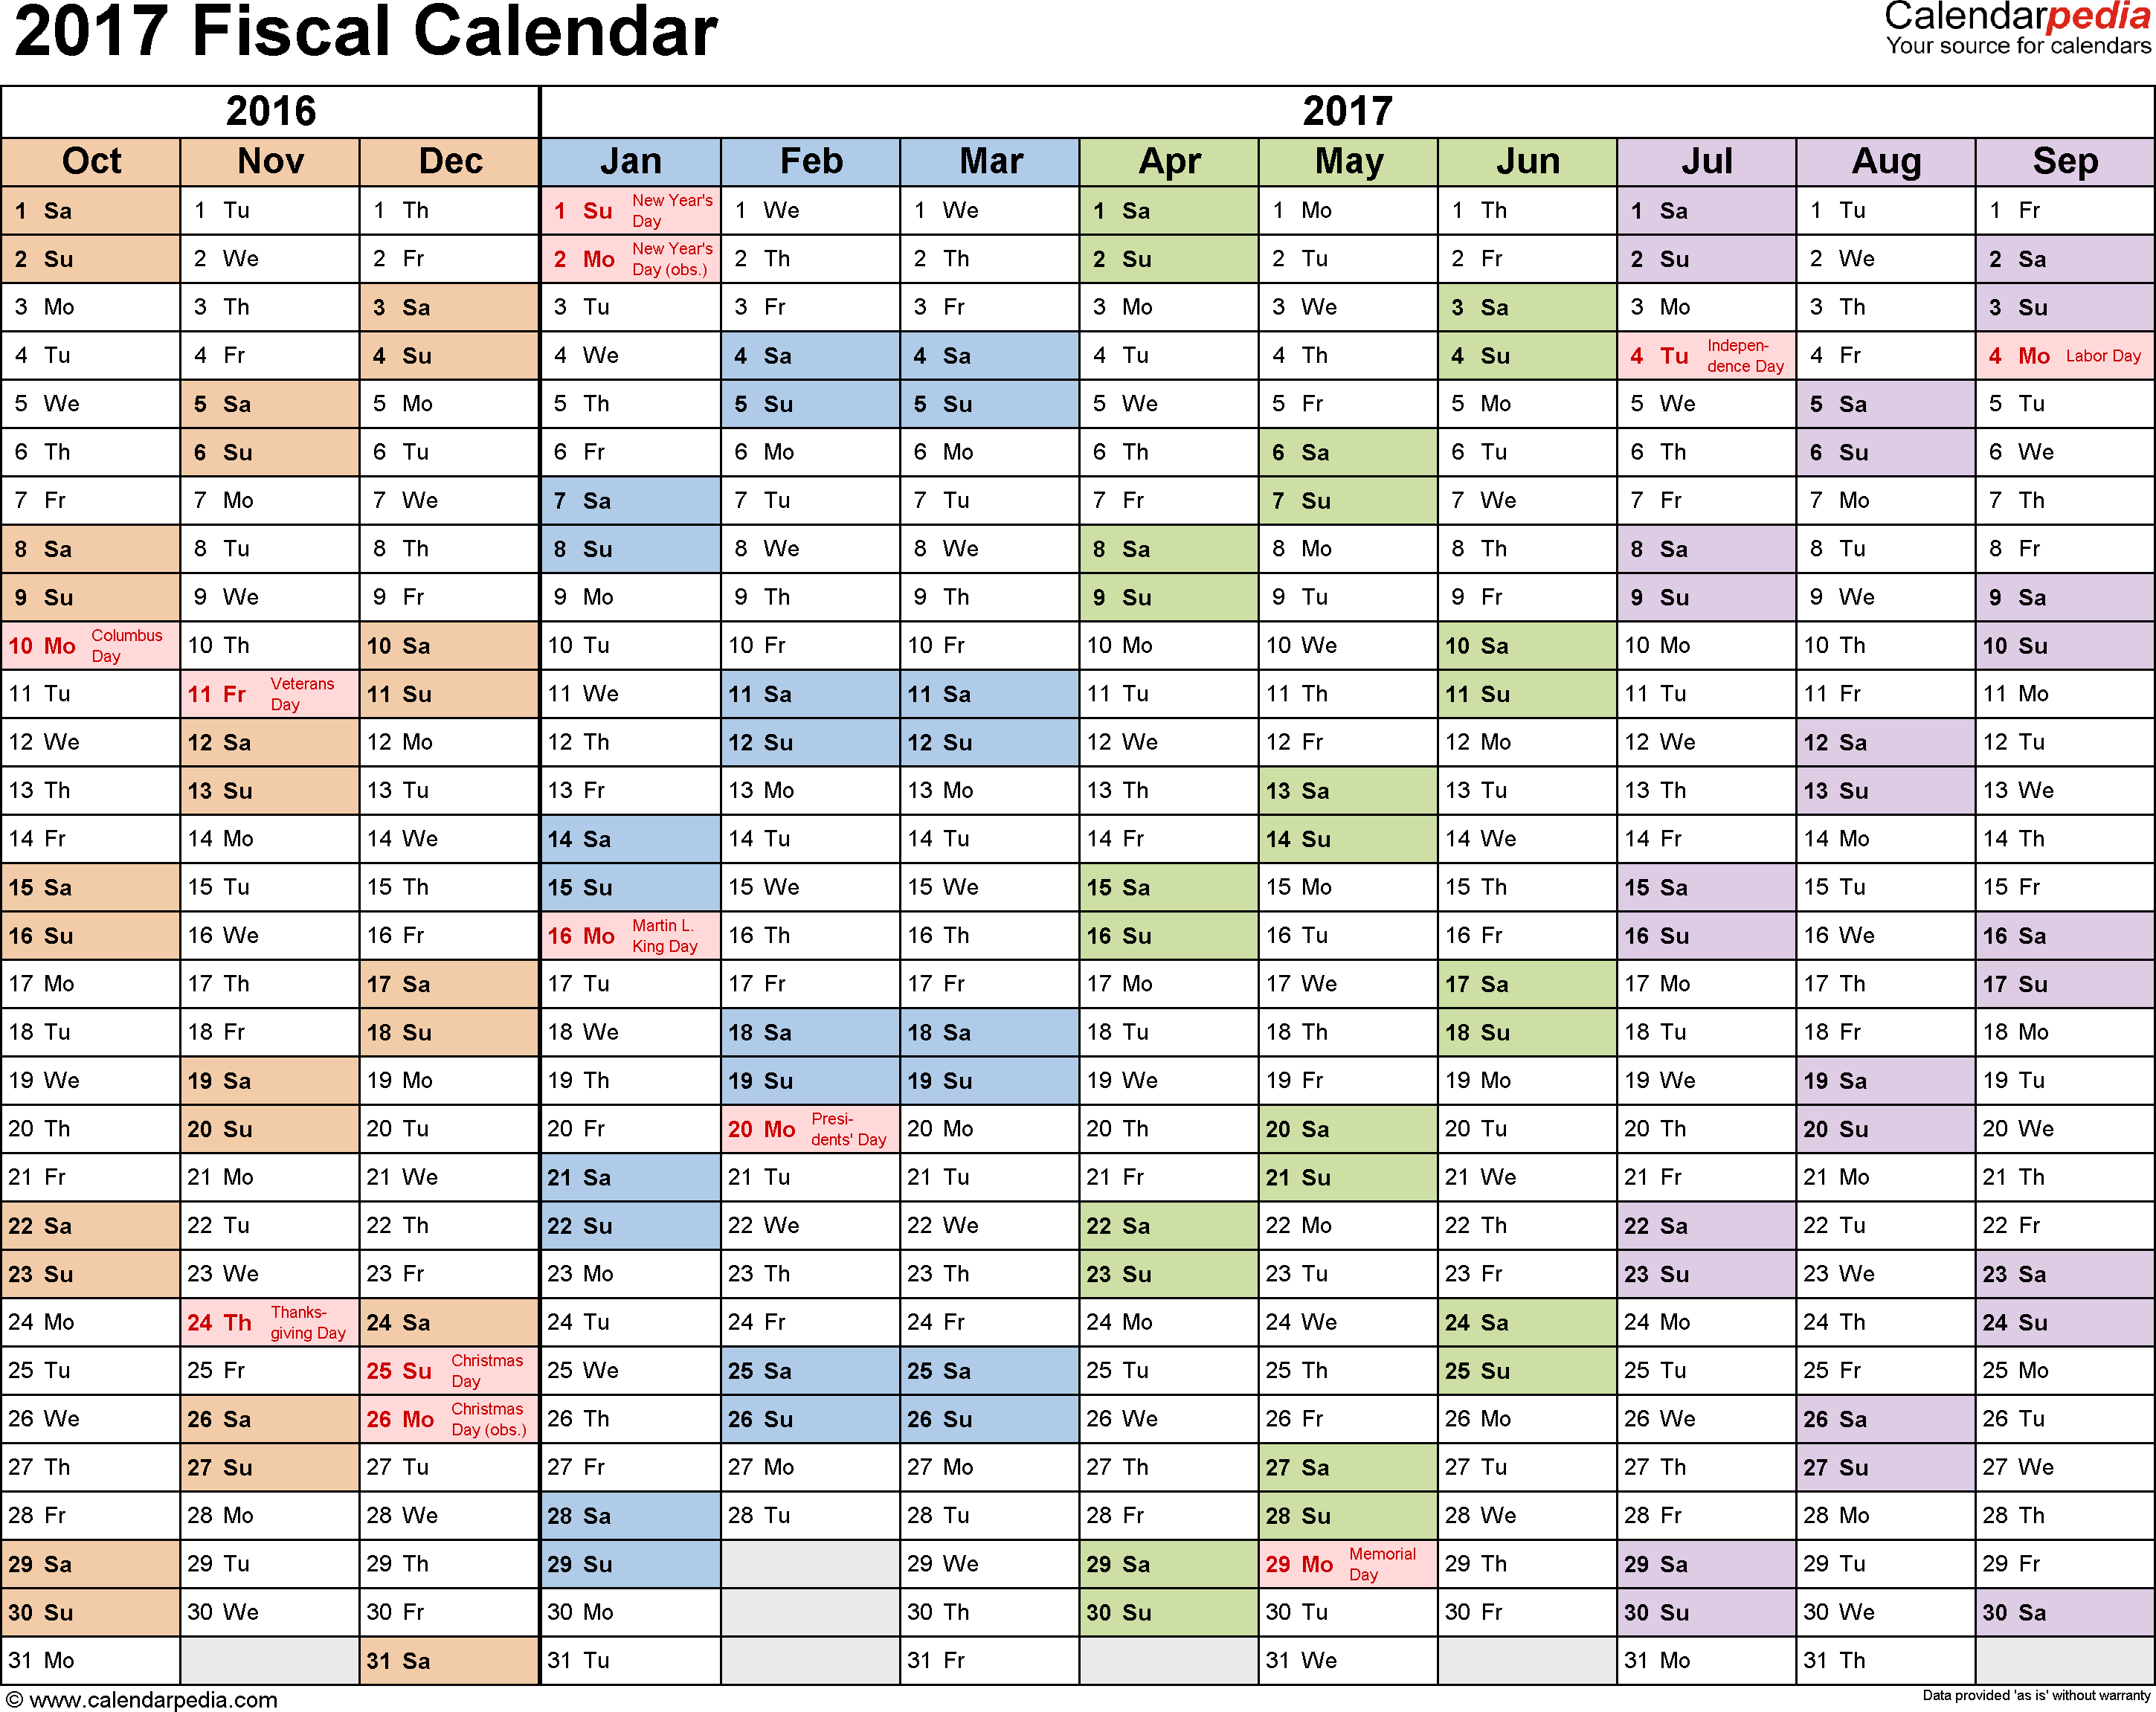 Template 1: Fiscal year calendar 2017 for Word, landscape orientation, months horizontally, 1 page